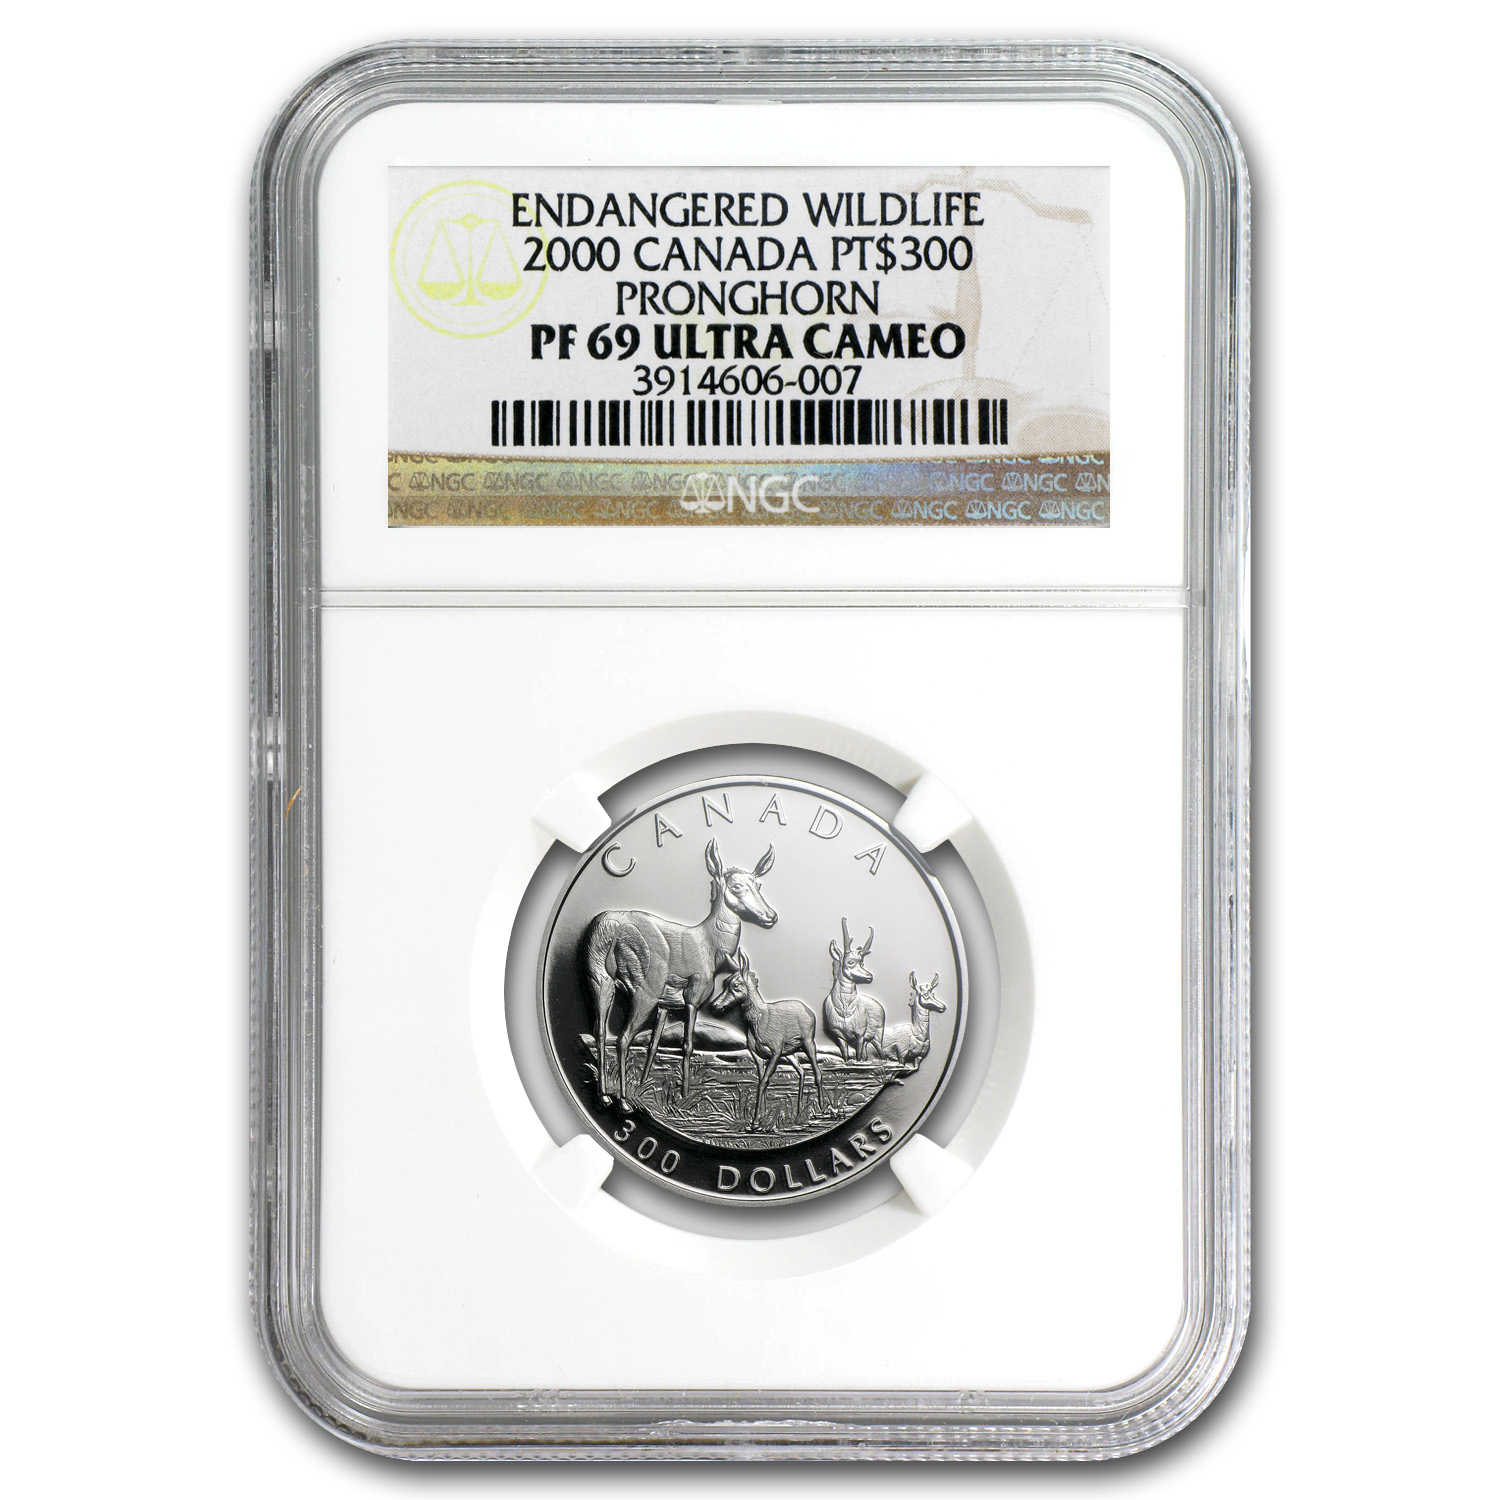 2000 Canada 1 oz Proof Platinum Pronghorn PF-69 NGC